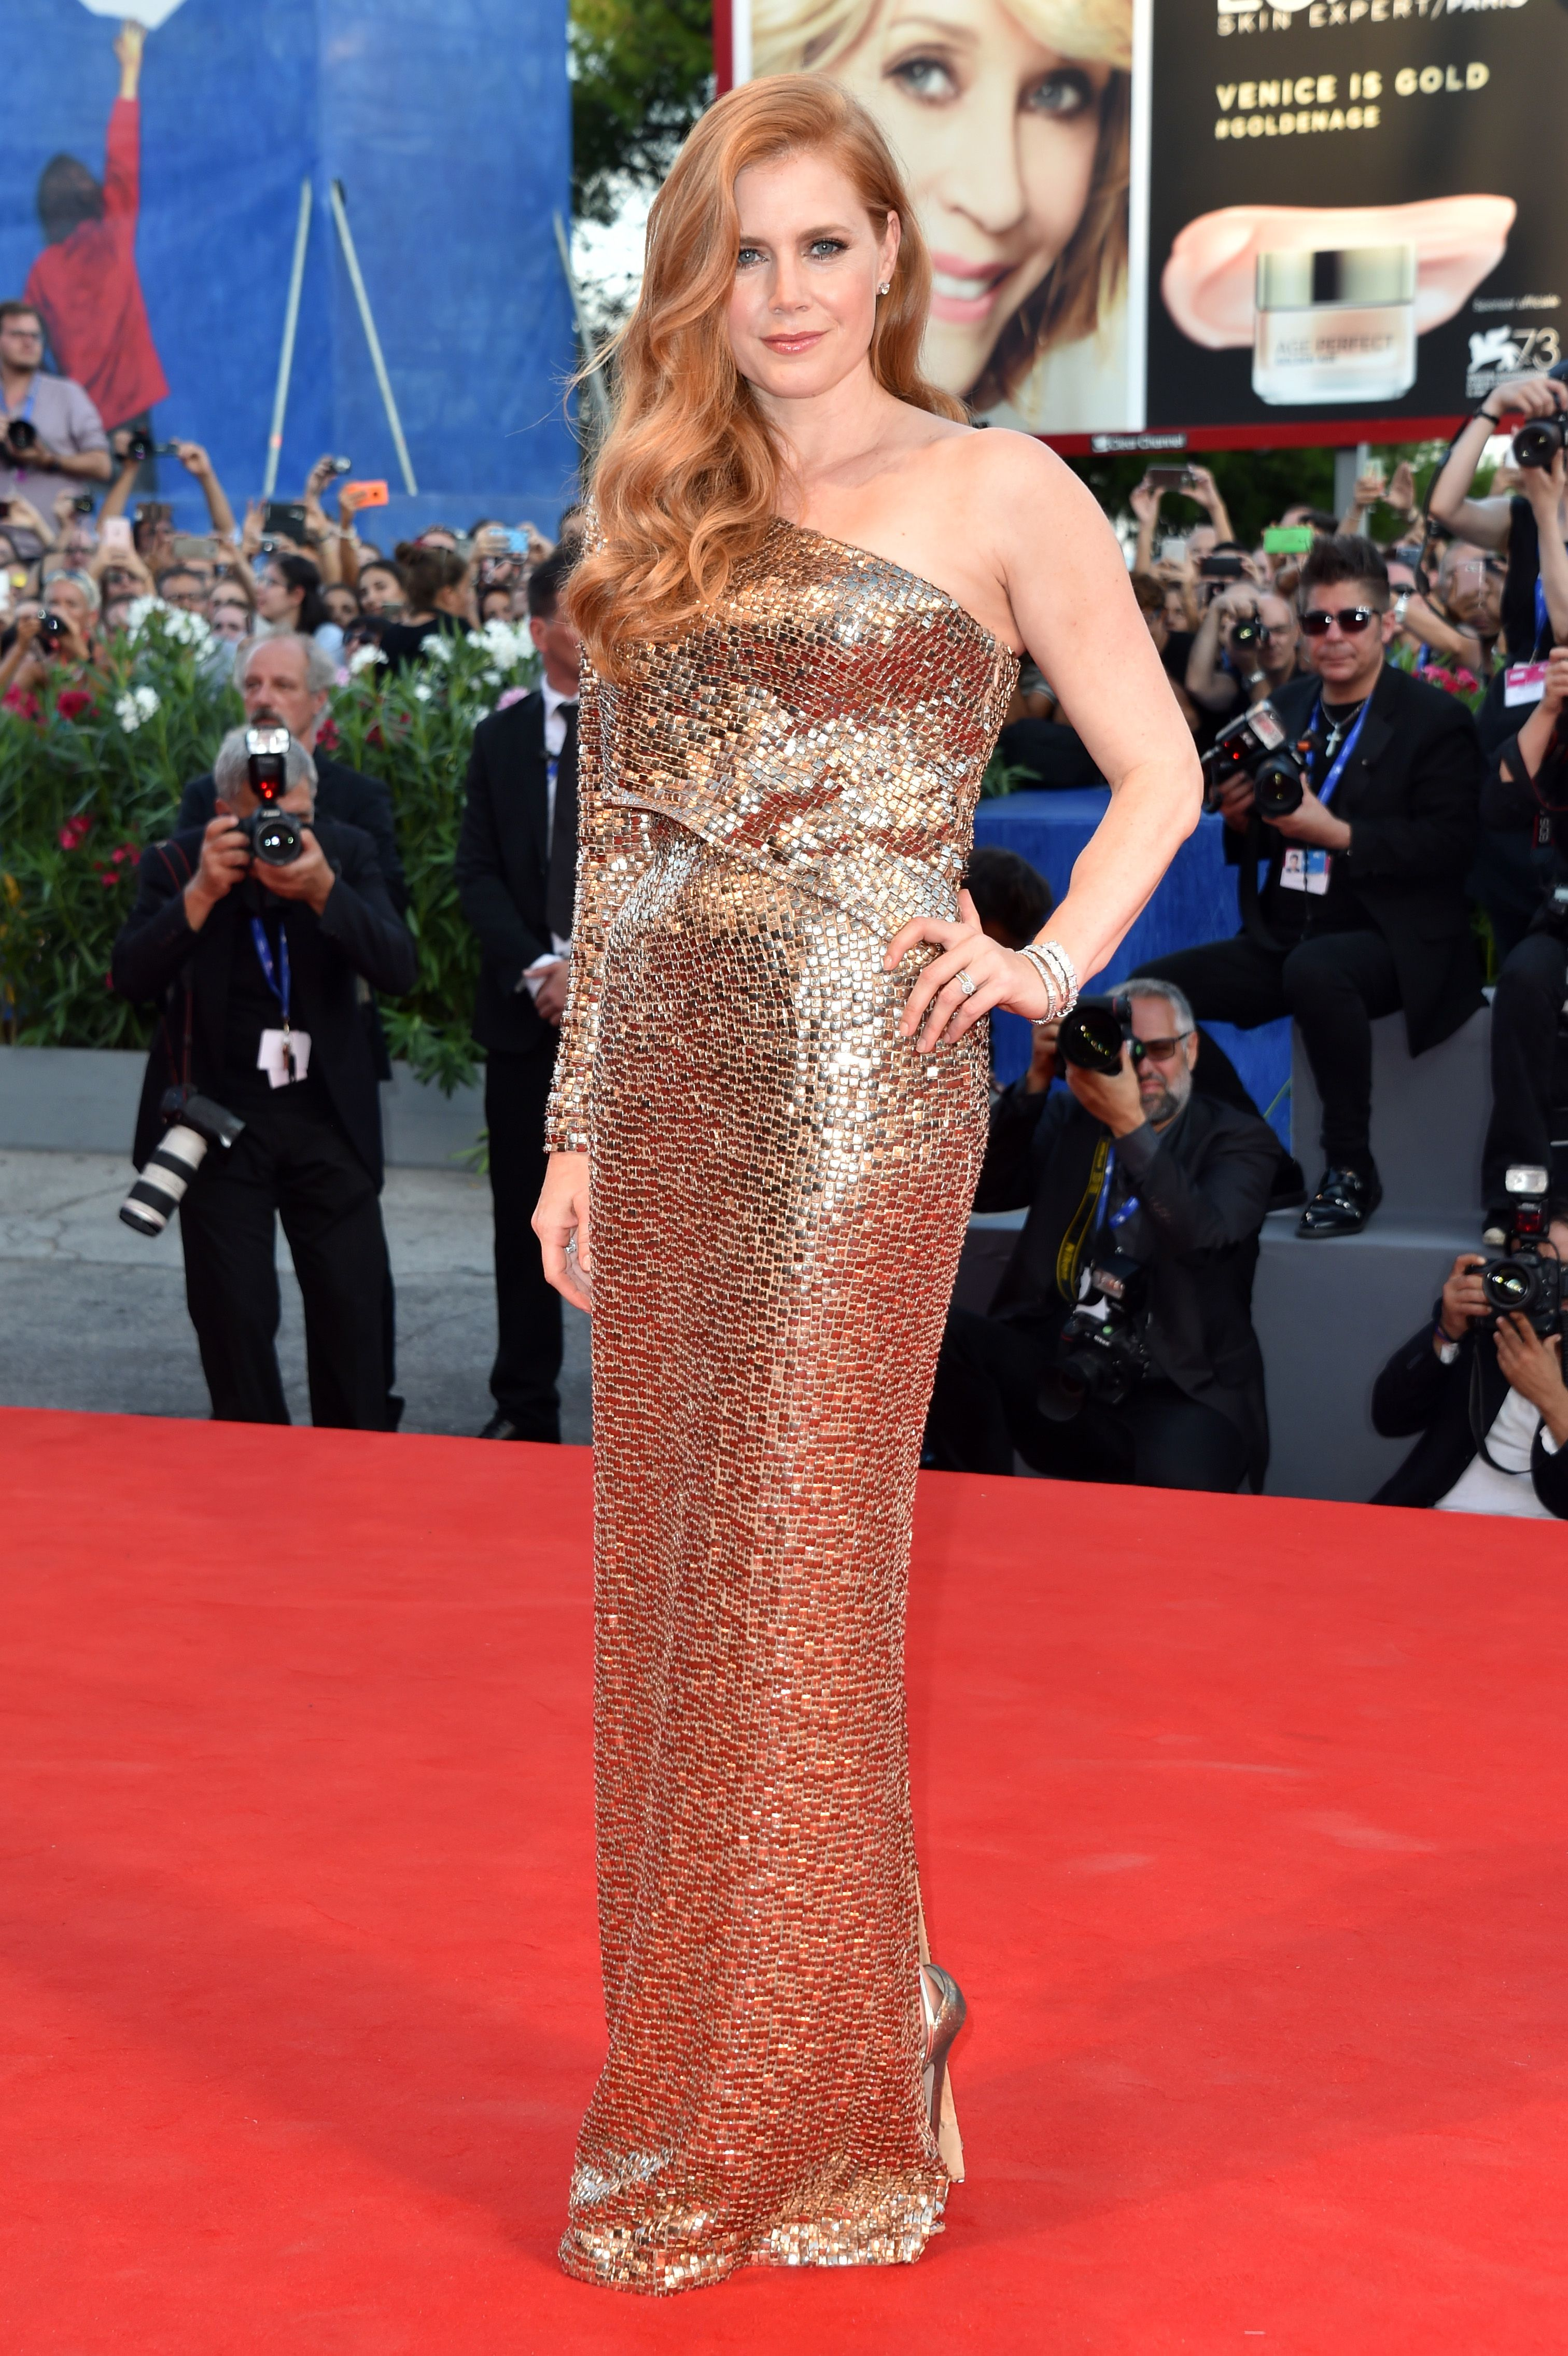 See the Most Glamorous Gowns at Venice Film Festival